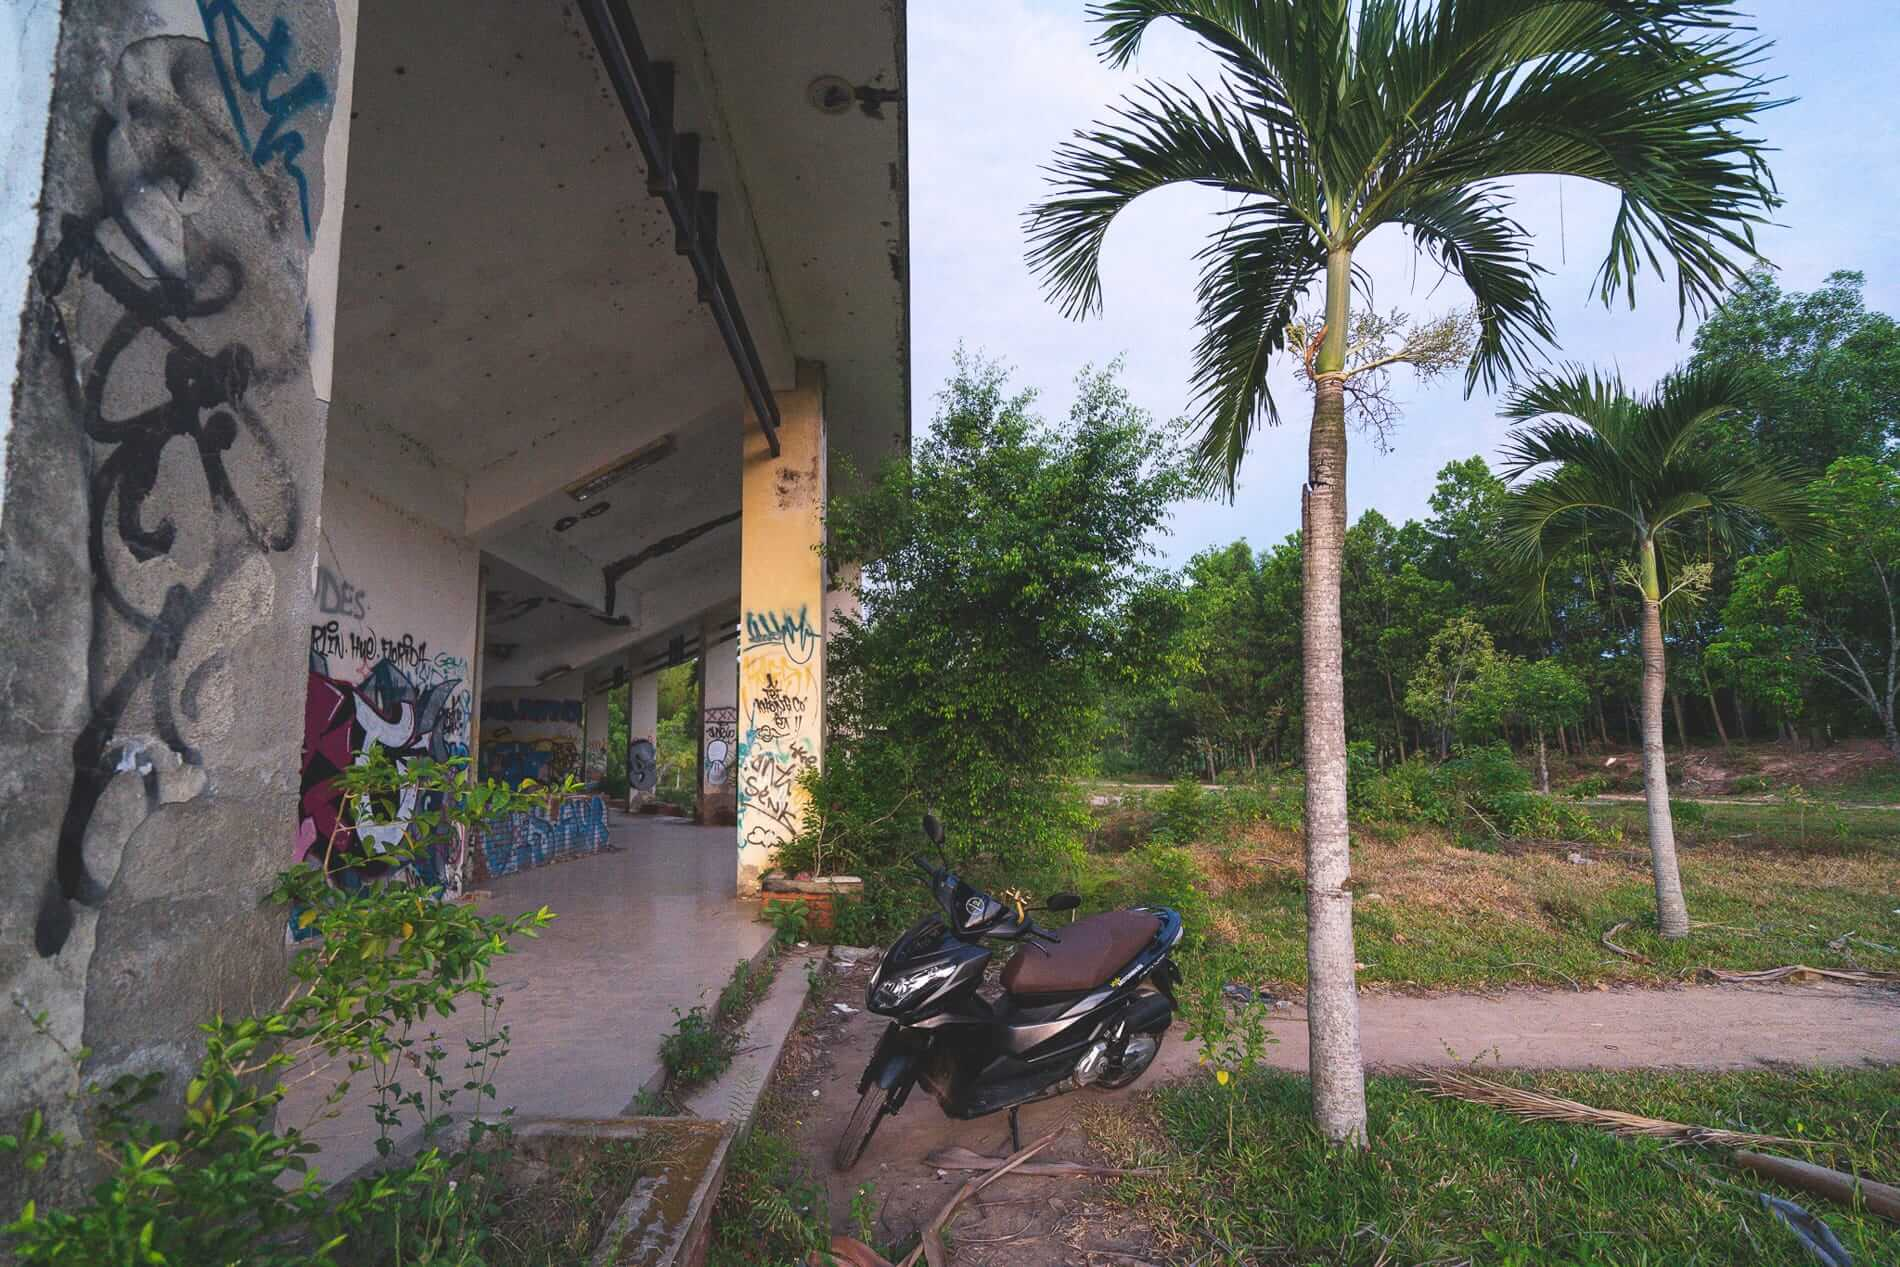 Parked motorcycle - Graffiti everywhere - Hues Abandoned Water Park